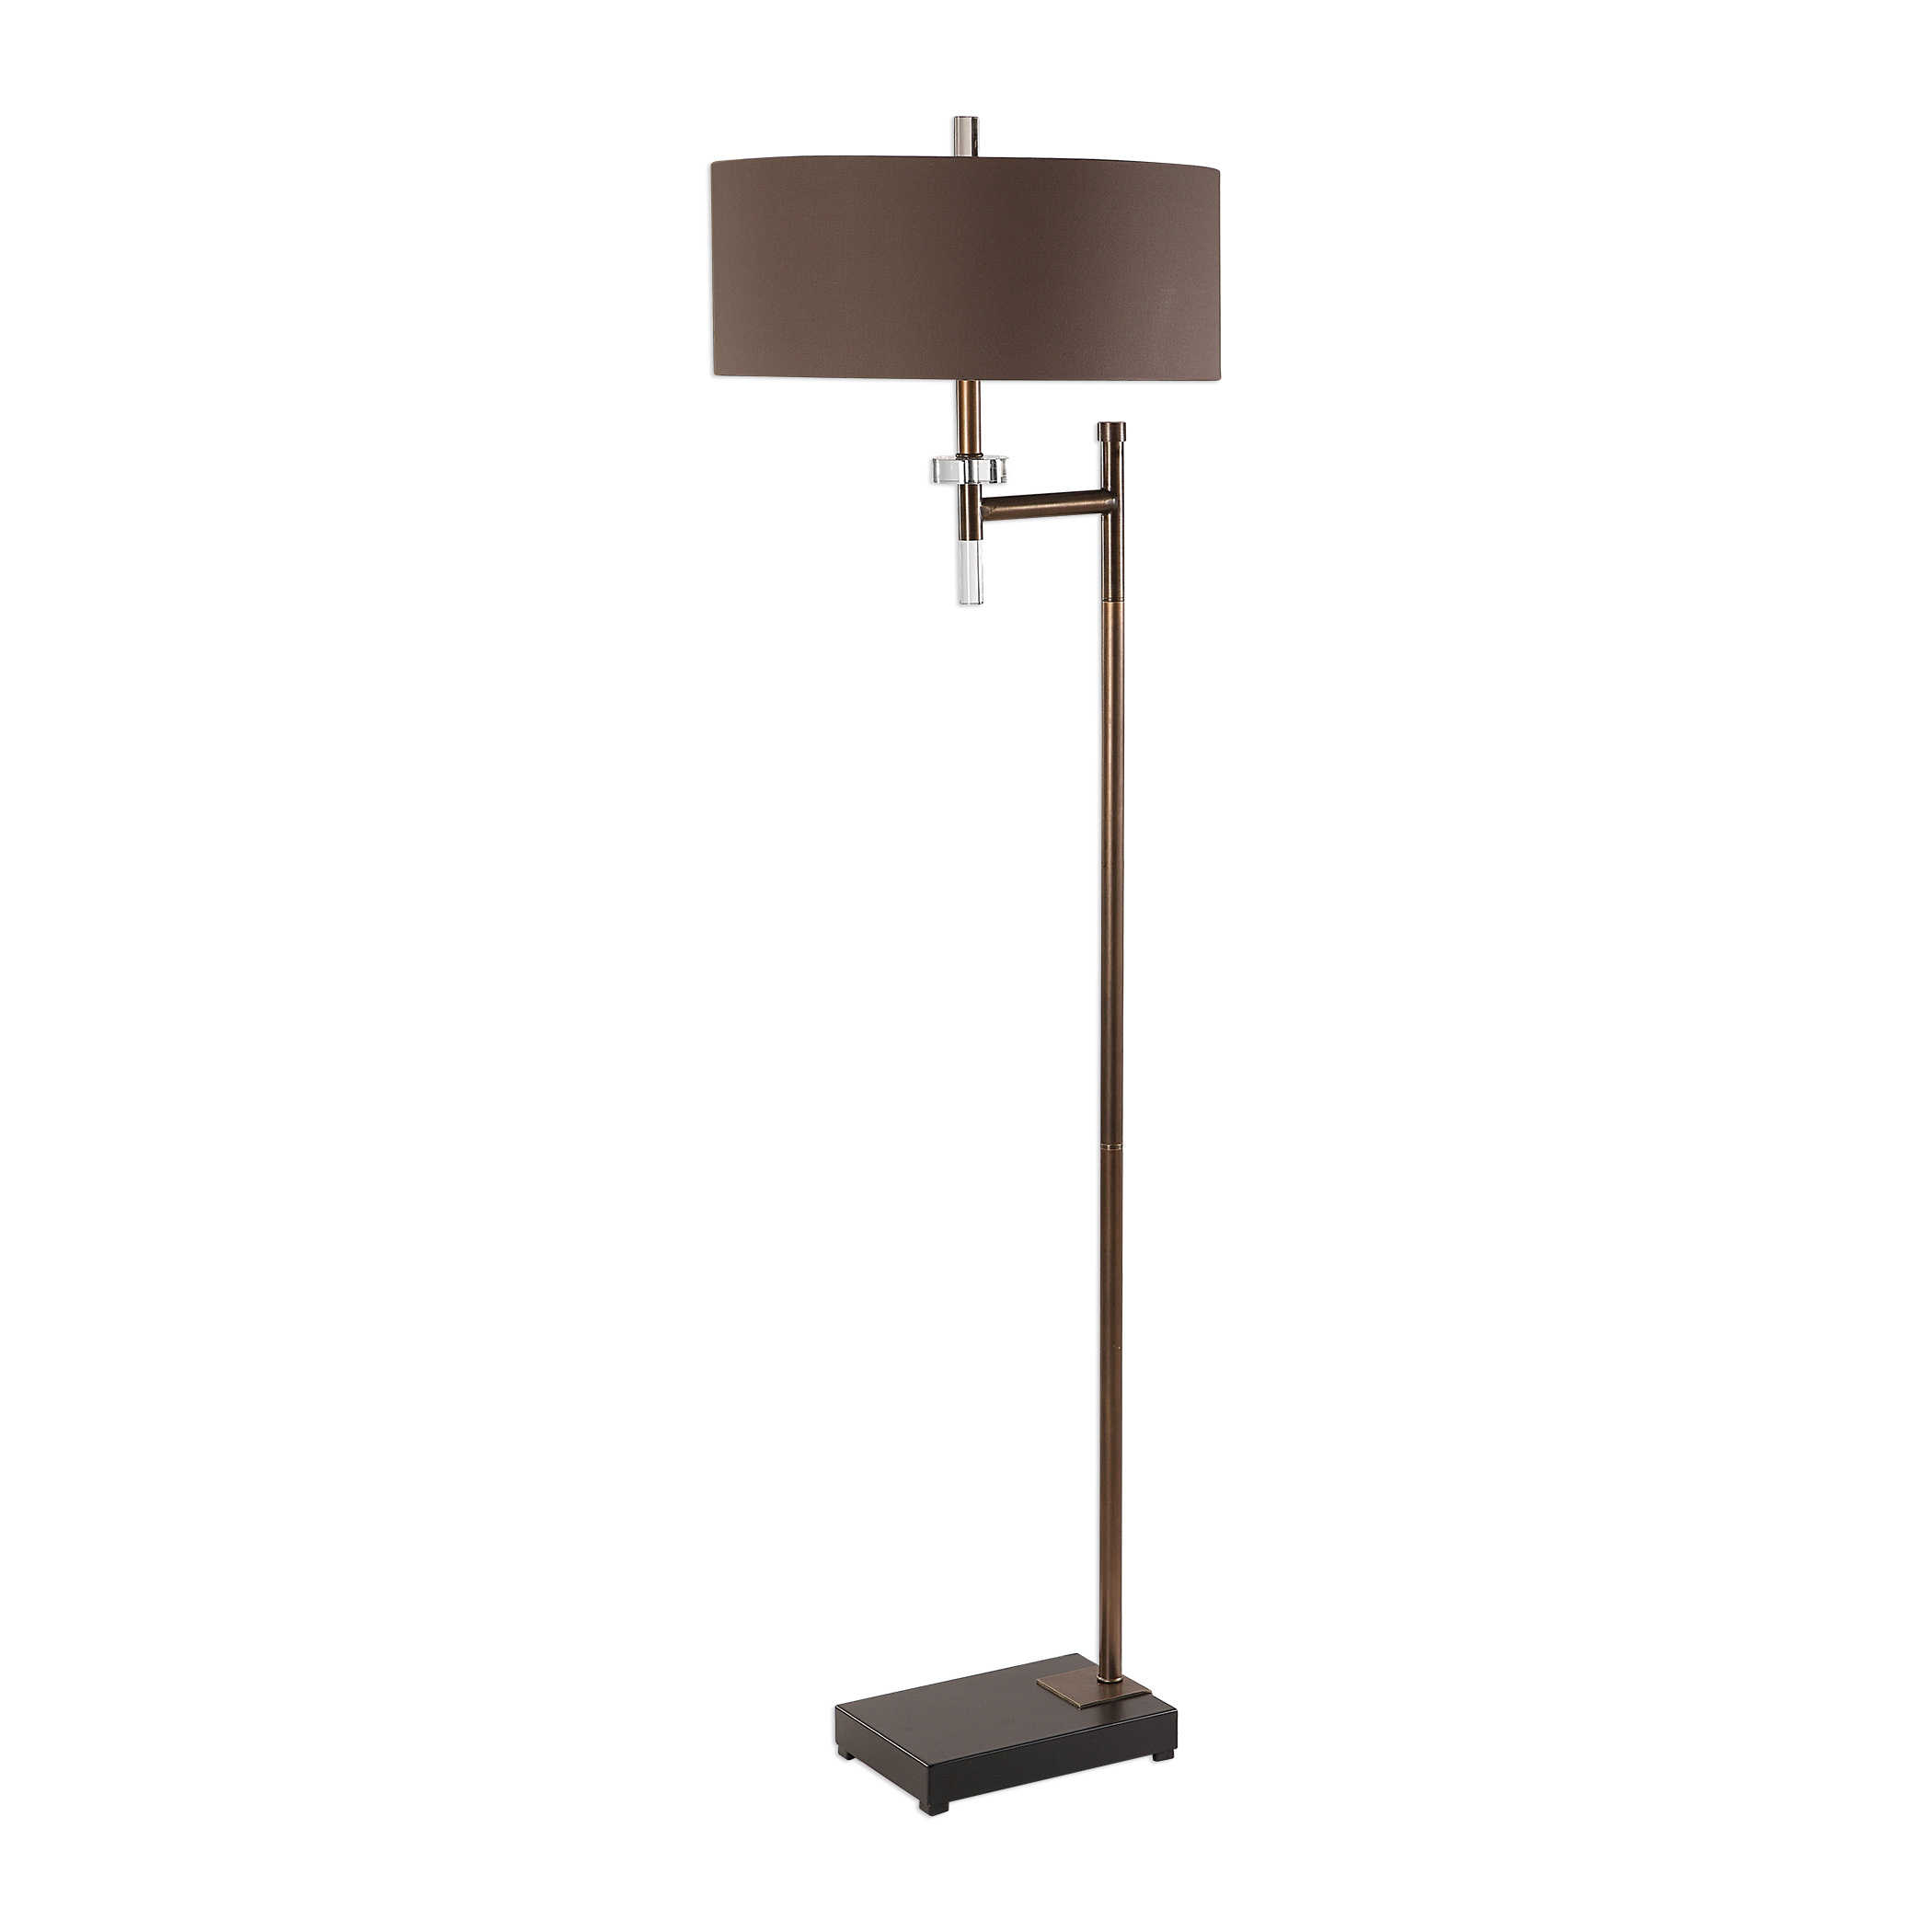 Swing Arm Floor Lamp You Ll Love In 2021 Visualhunt